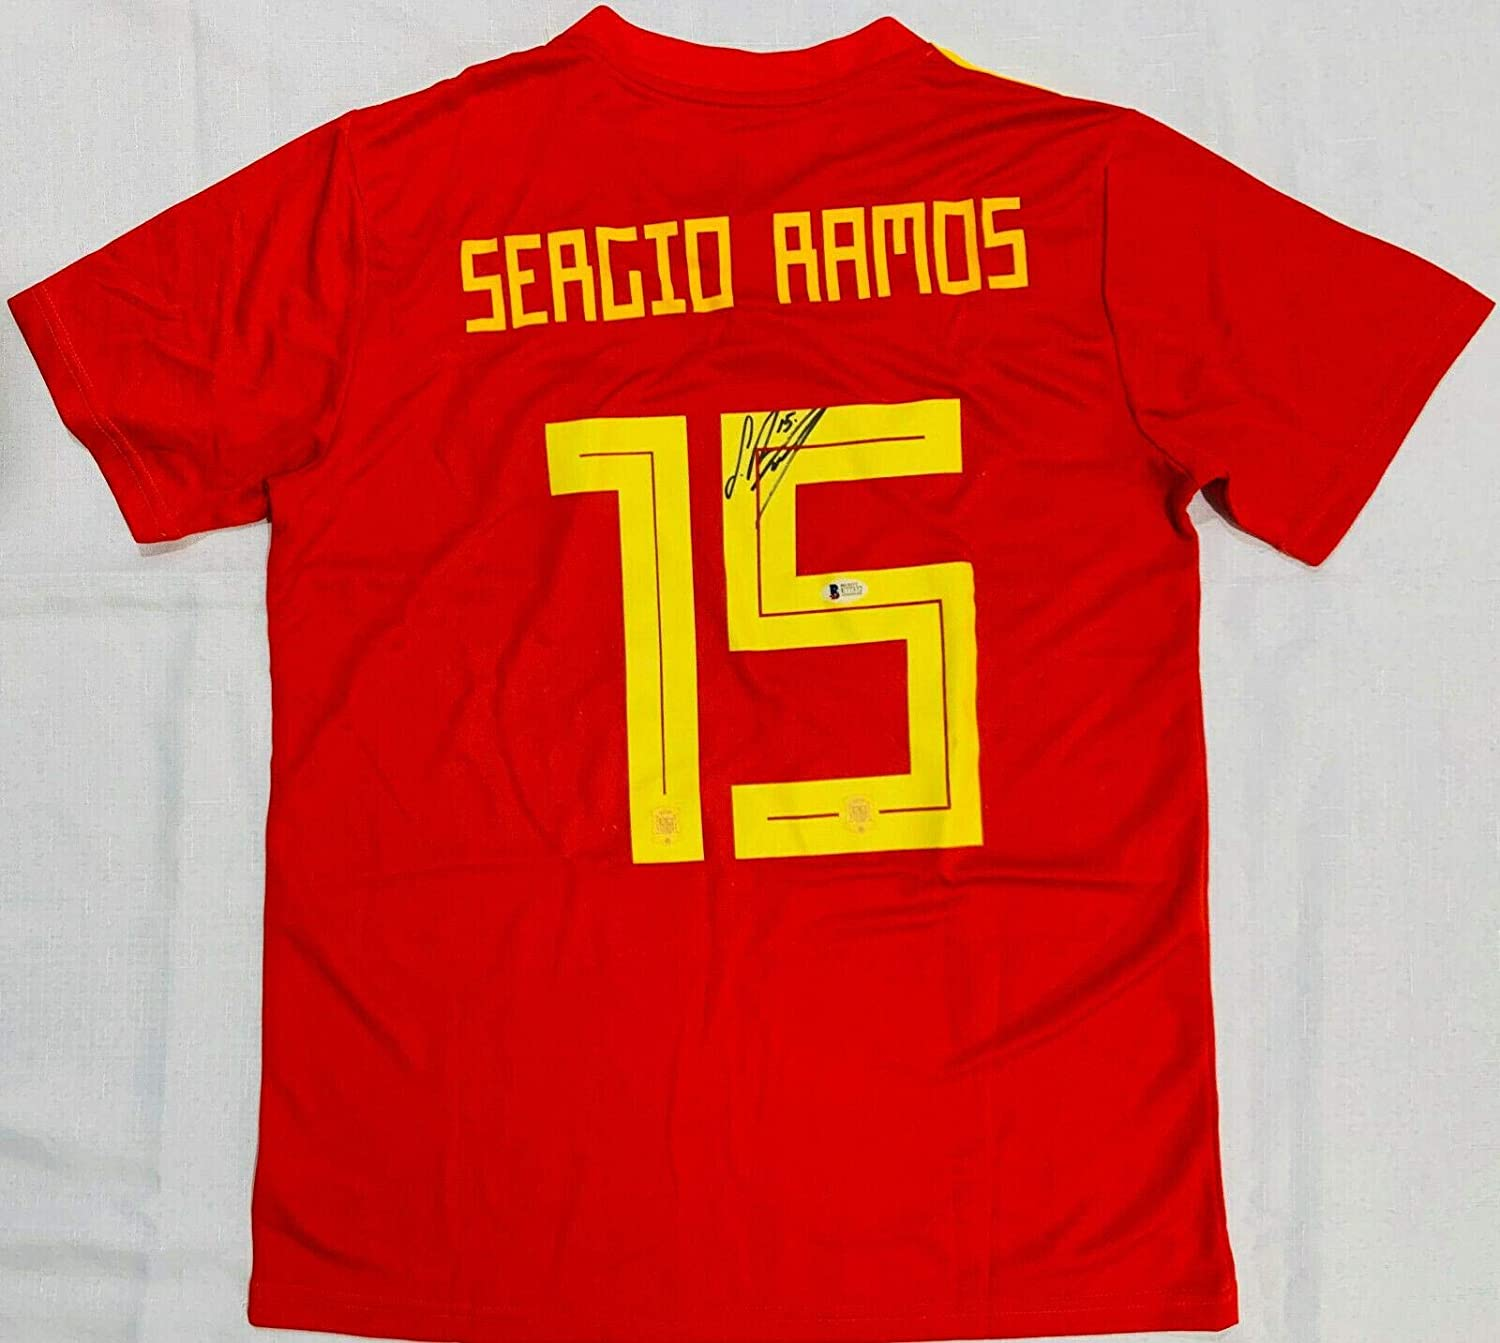 buy online eac43 4d696 Autographed Sergio Ramos Jersey - Spain World Cup Beckett ...